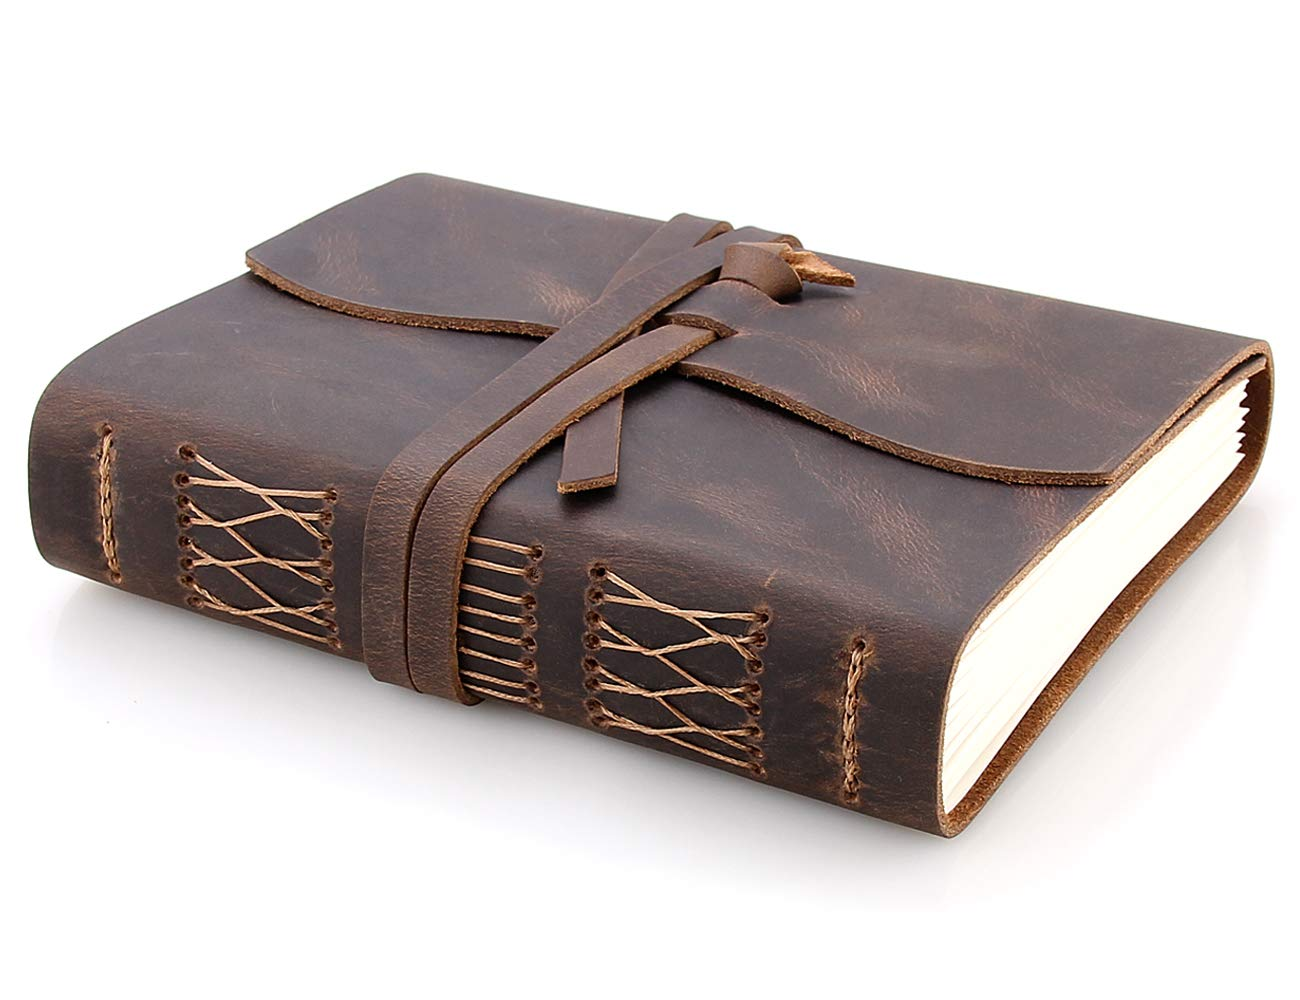 Leather Journal Travel Notebook, Handmade Vintage Leather Bound Writing Notebook for Men & Women, Unlined Travel Journal to Write in 320 Pages Pocket Size 5.2x4 Art Sketchbook, Travel Diary Jian Chen Commerce Co. Ltd TN2017016-2